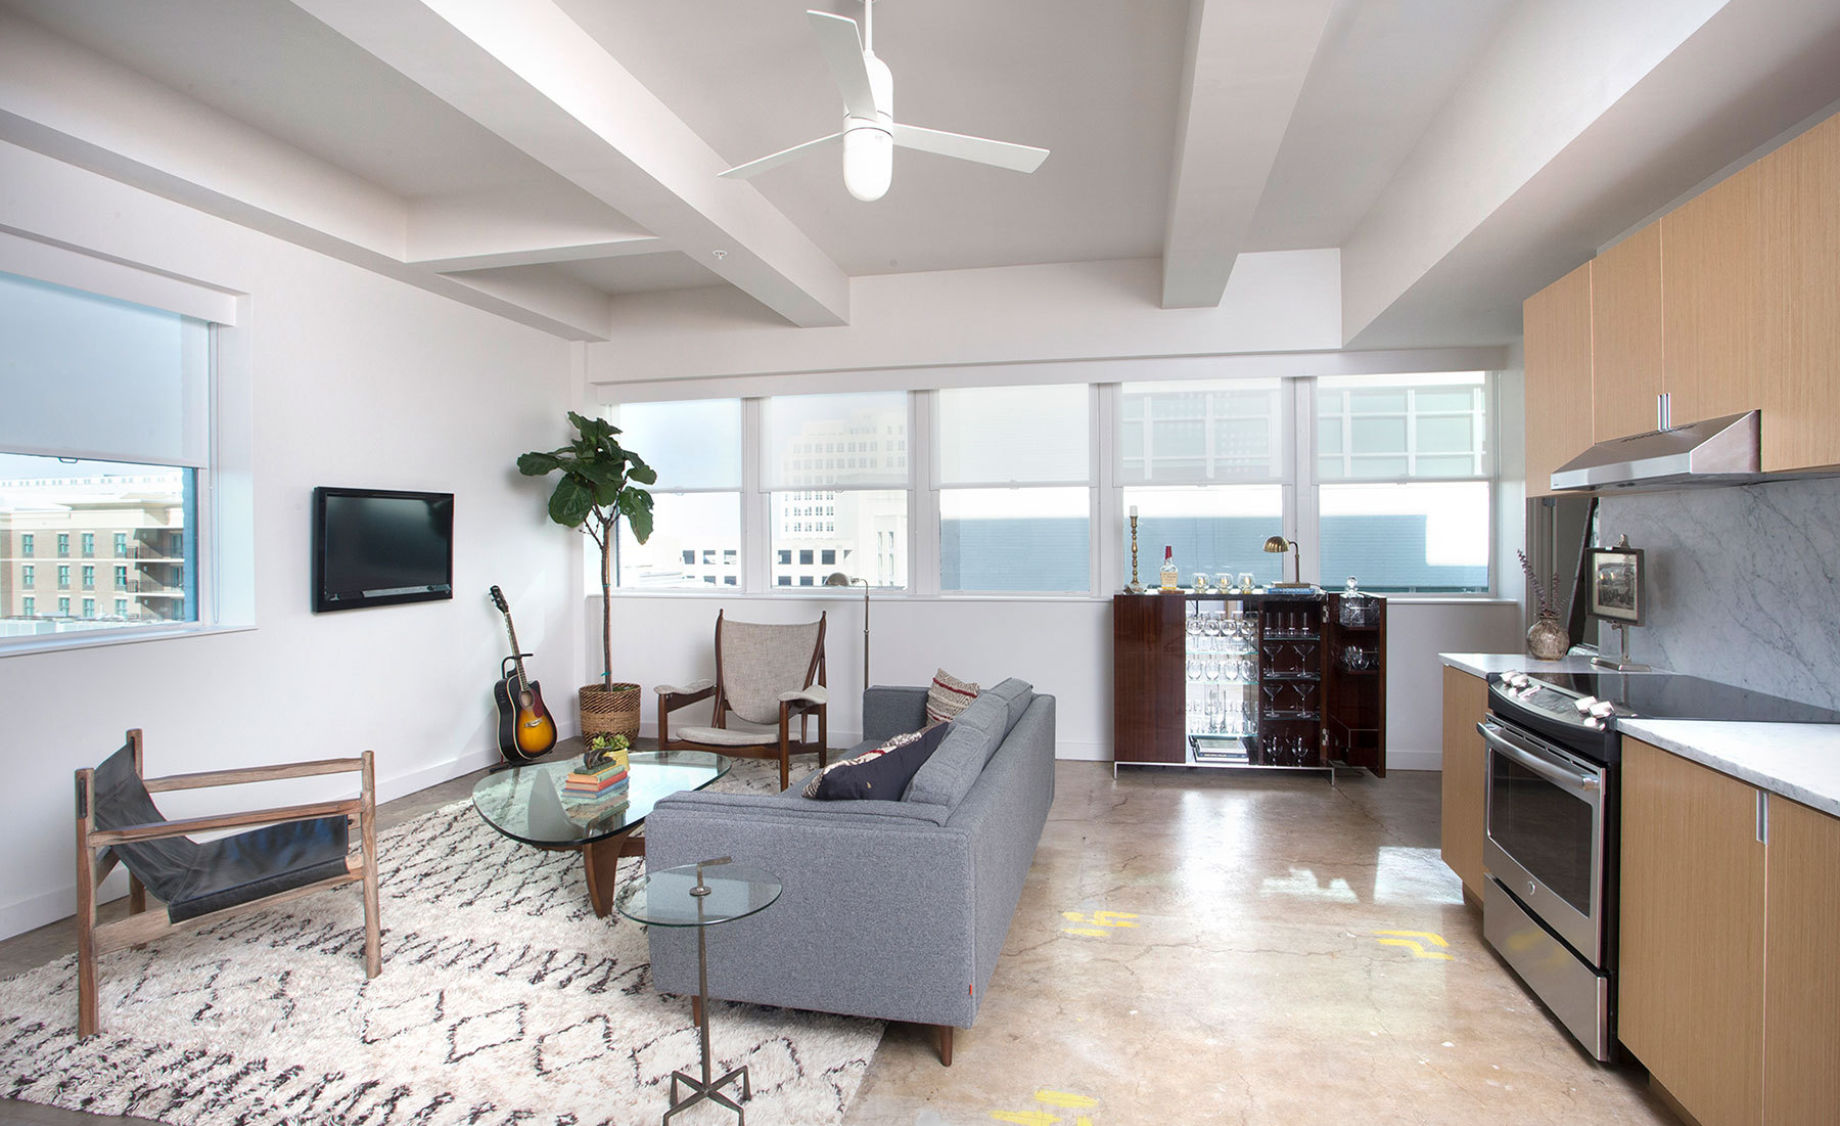 for rouge plan desiree view bed bayonne at southshore the bath floor apartments apartment premium is la in floorplans baton bedroom